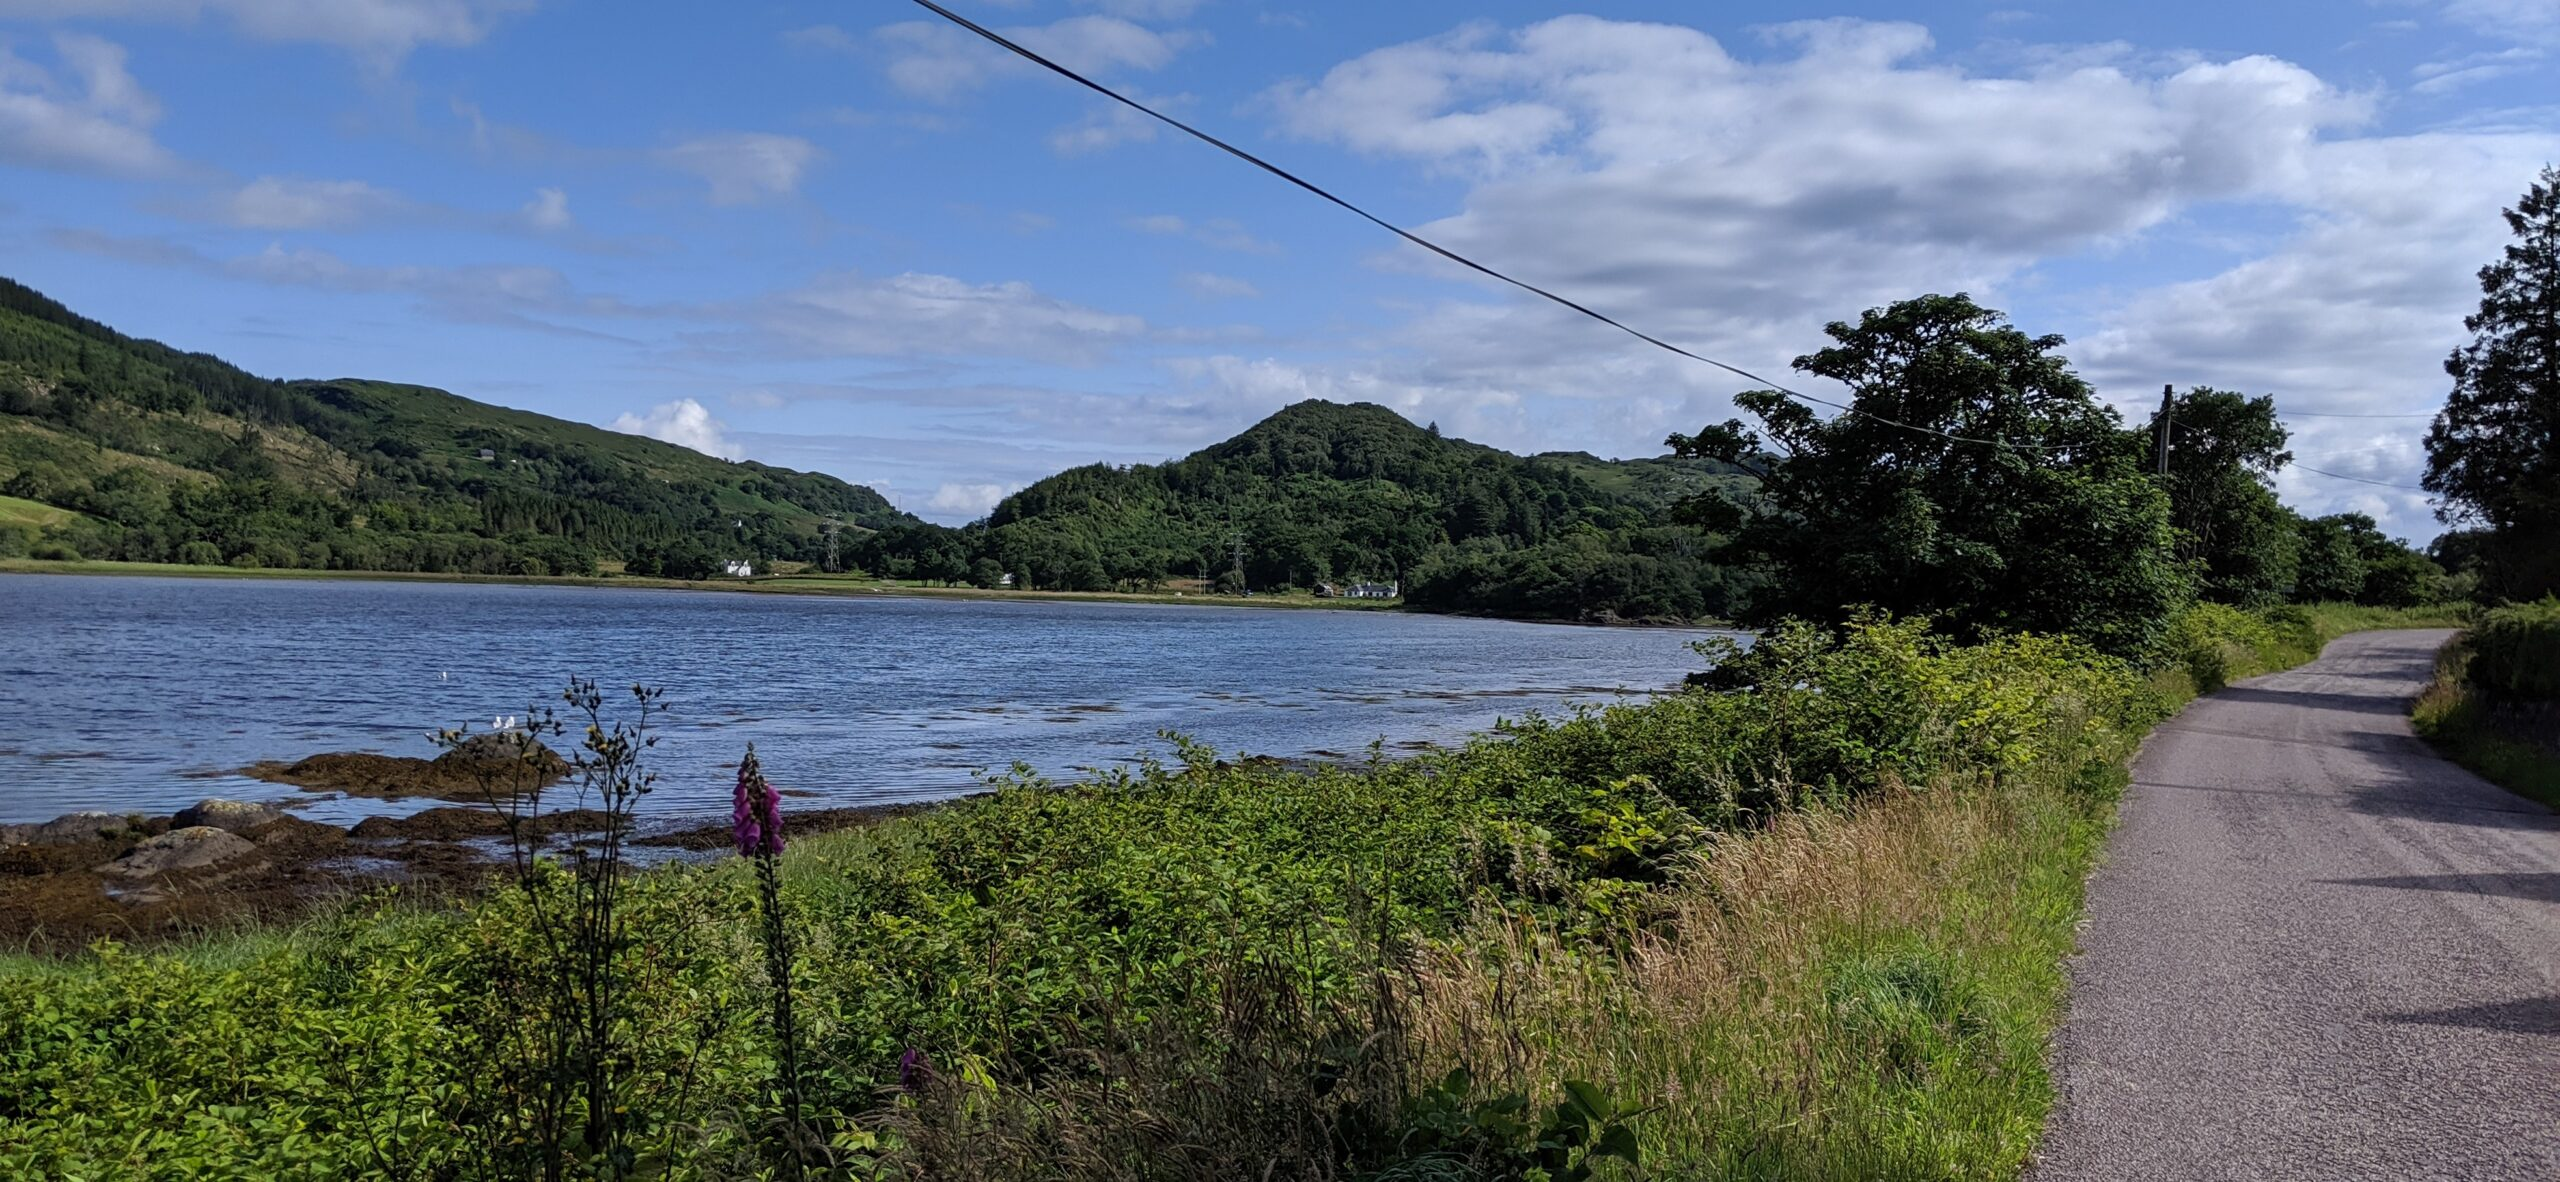 The waters of West Loch Tarbert at left end at a hill. To the right, a road winds toward the hill and around it.